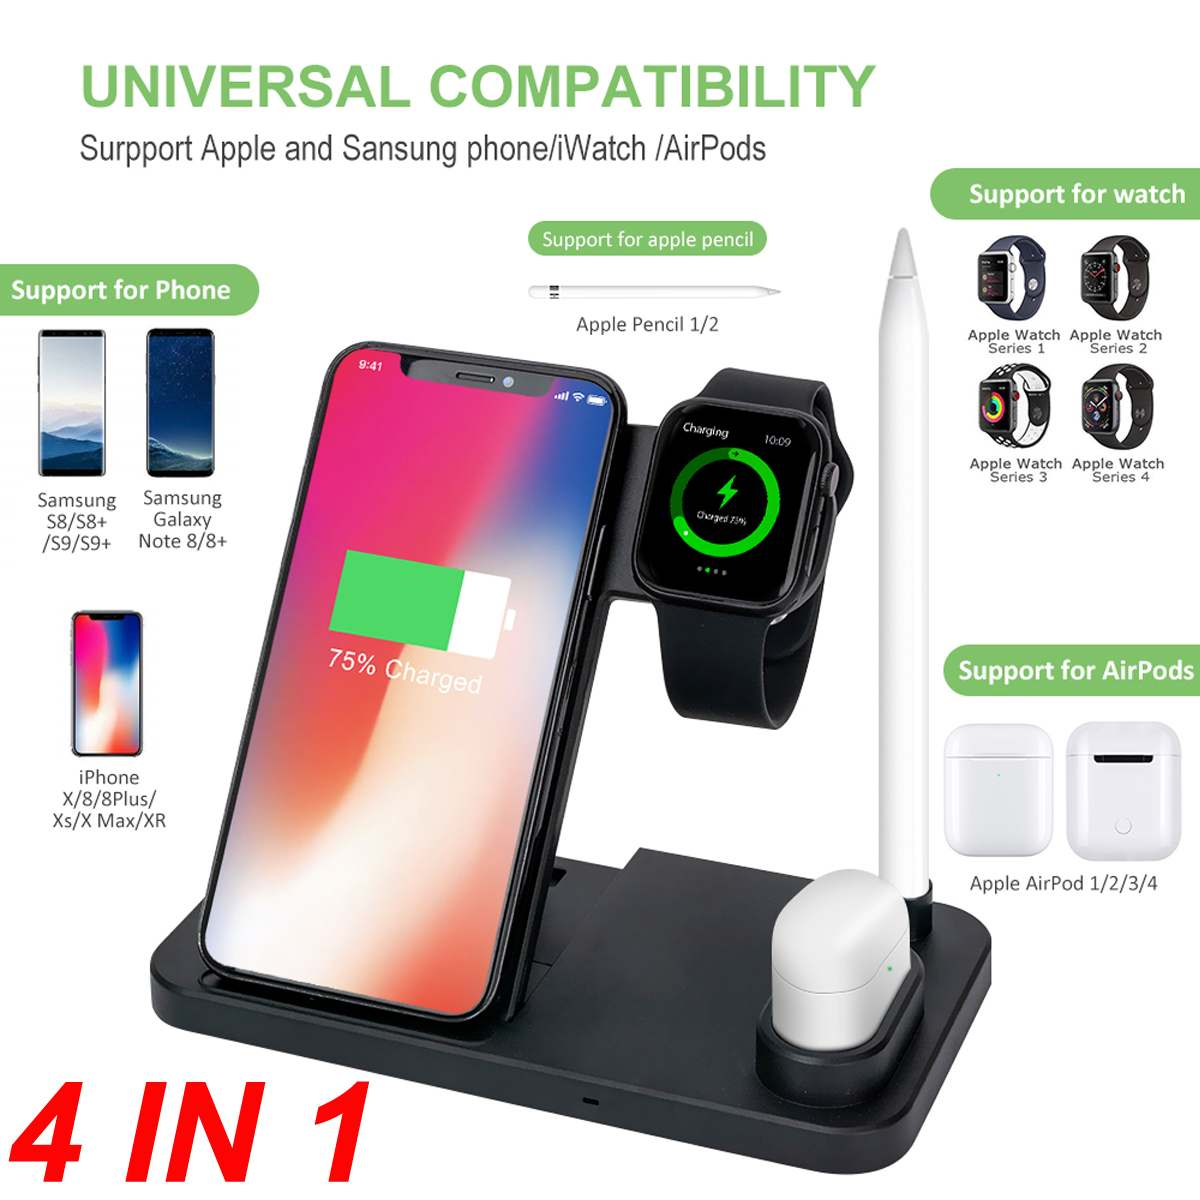 US $21.41 38% OFF|4in1 Wireless Charger Dock Station Pad 7.5W10W Fast Qi Wireless Charger Stand for Apple Watch Pen for iphone XRXS For